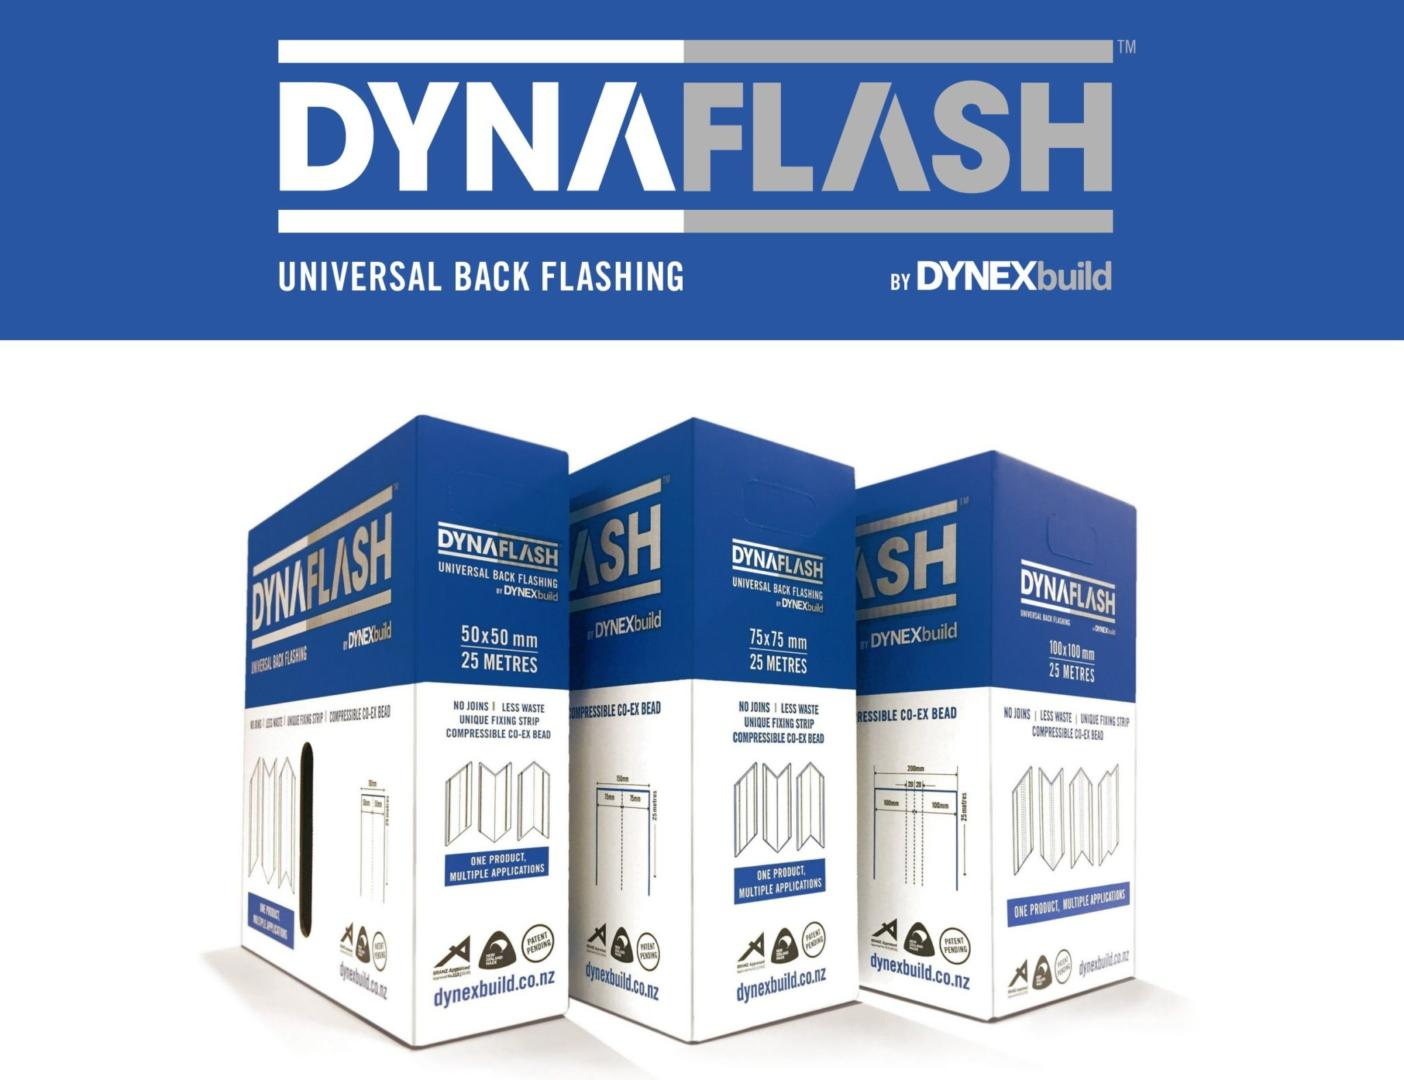 DynaFlash Universal Back Flashing – Now Available in 100x100mm